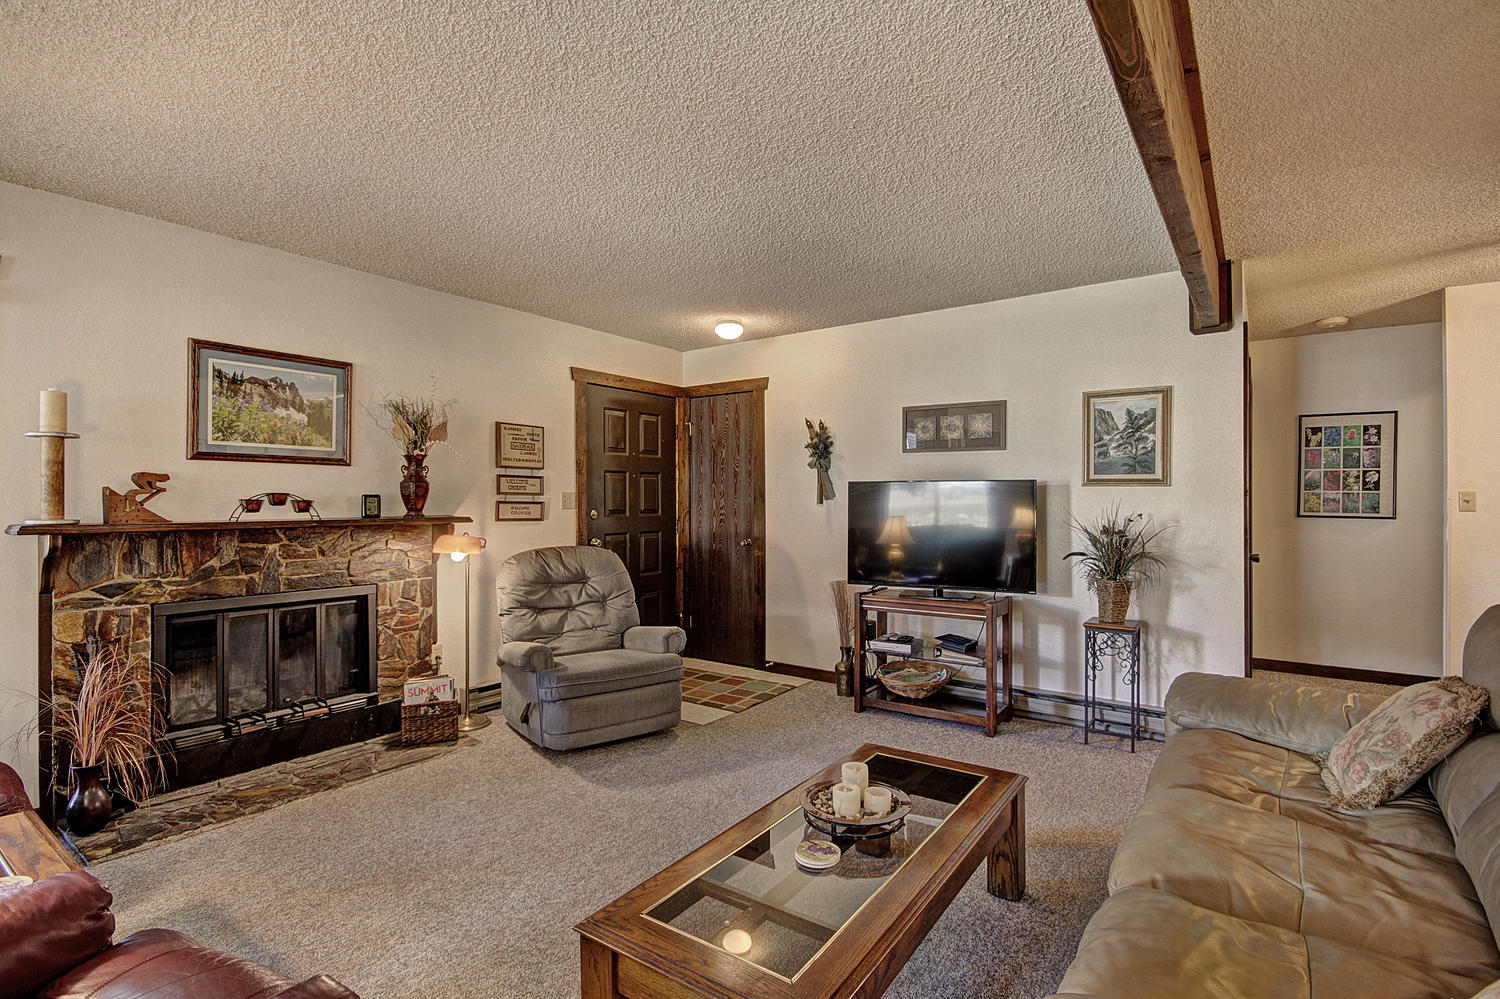 Condominium for Sale at Summit Point 16 Share 3414 Ryan Gulch Road Silverthorne, Colorado 80498 United States